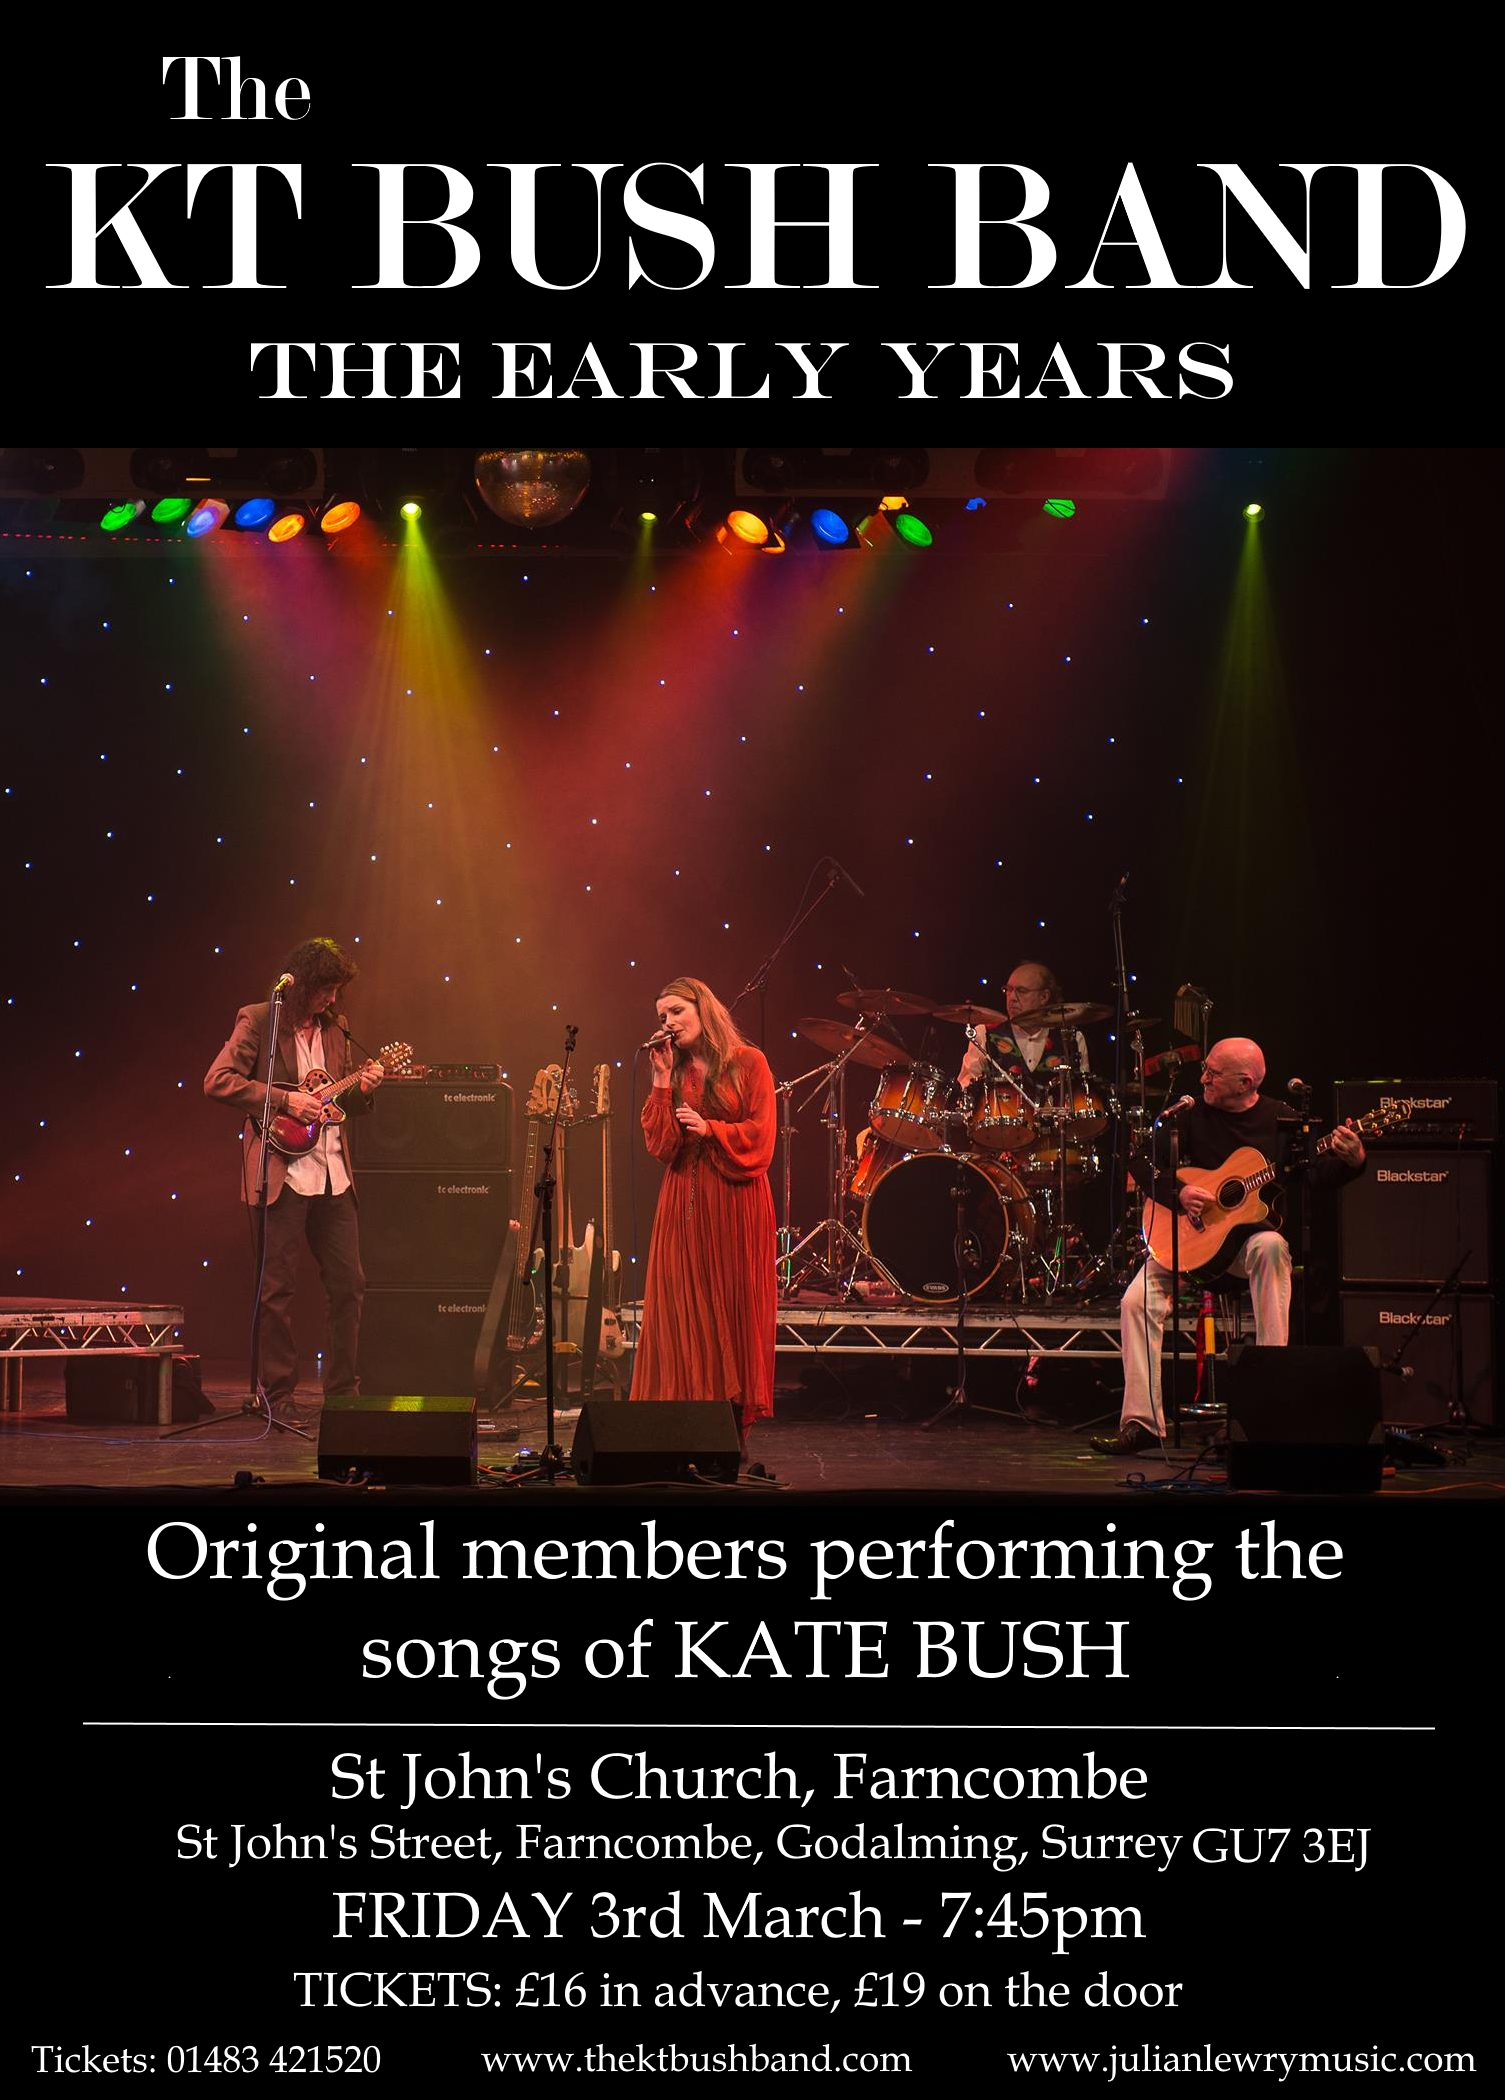 KT Bush Band Poster